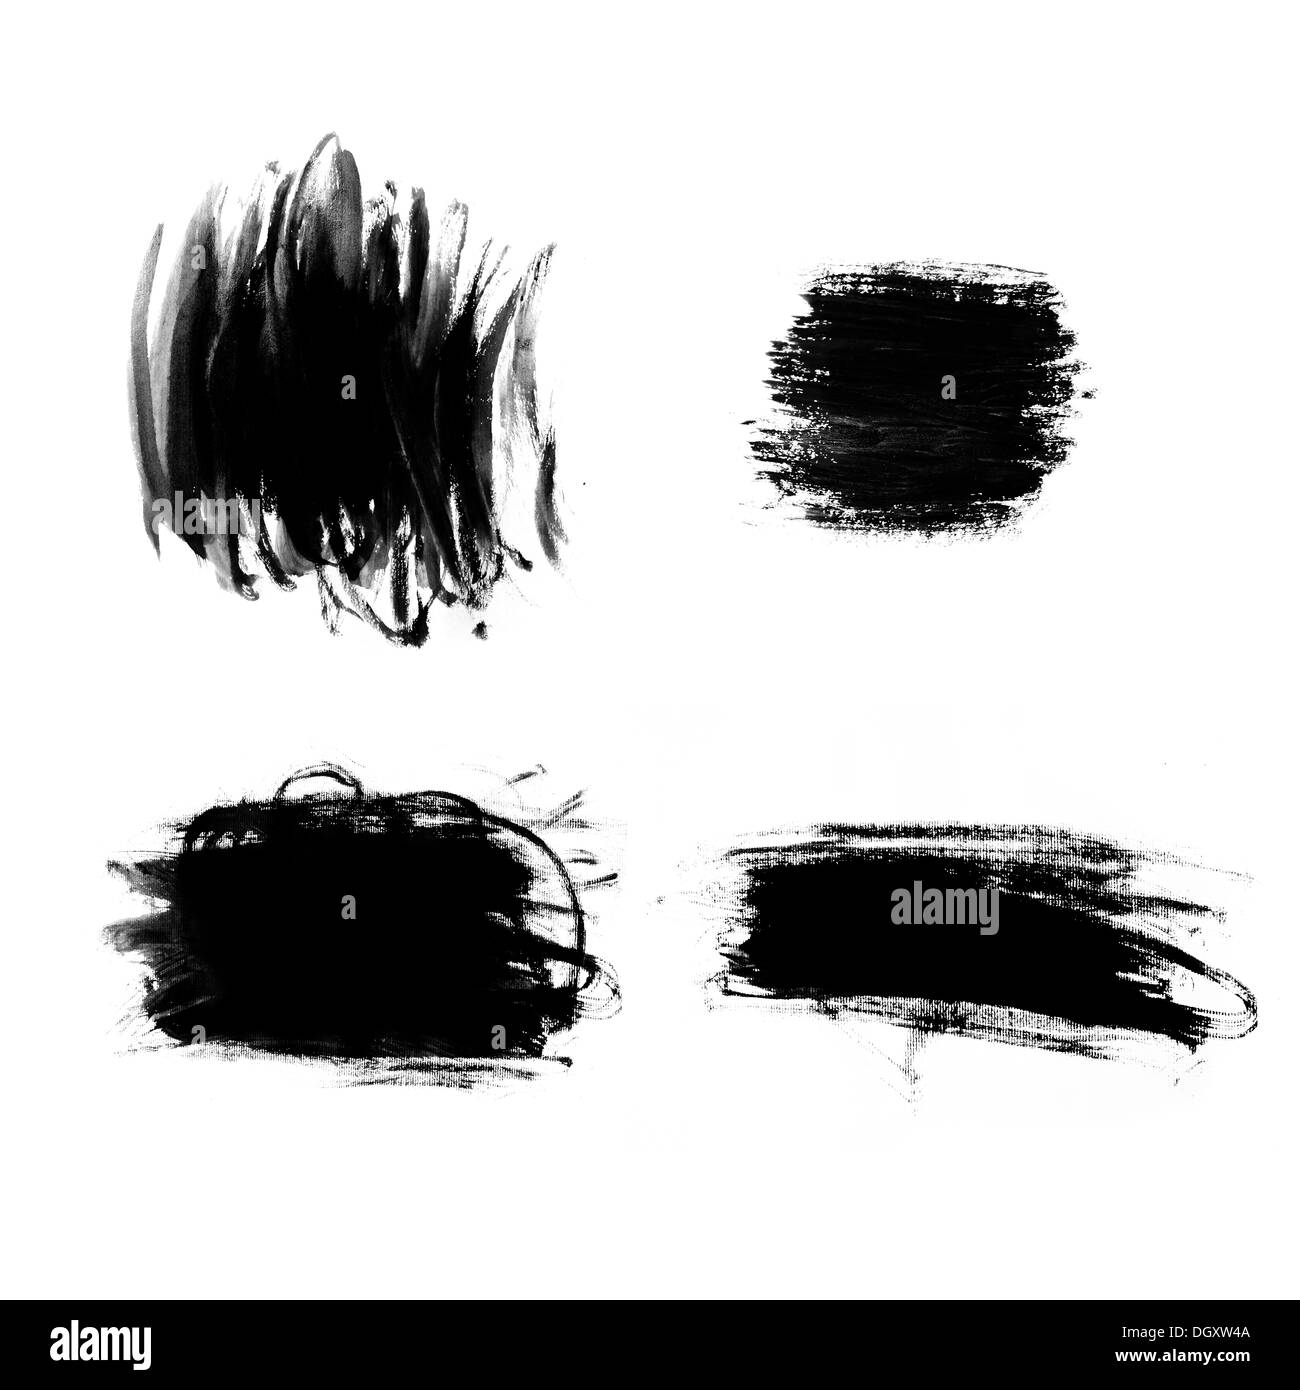 Abstract paint brush strokes Black brush strokes over textured